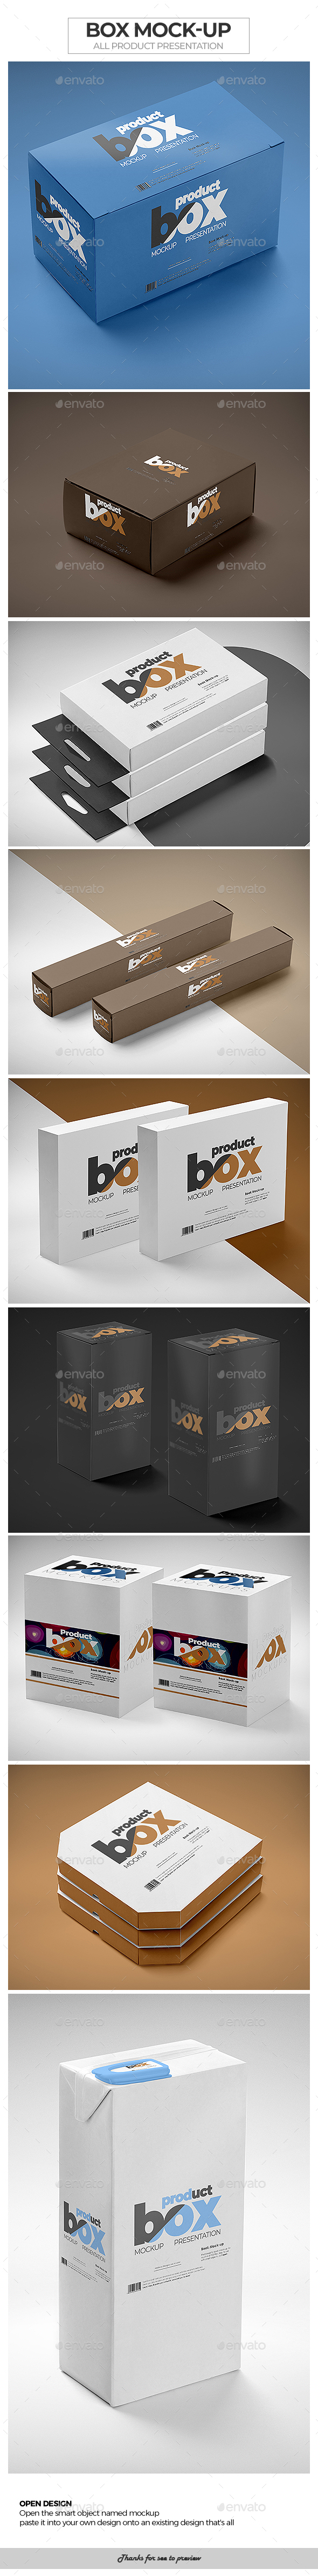 Box Mock-Up / All Product Presentation - Packaging Product Mock-Ups